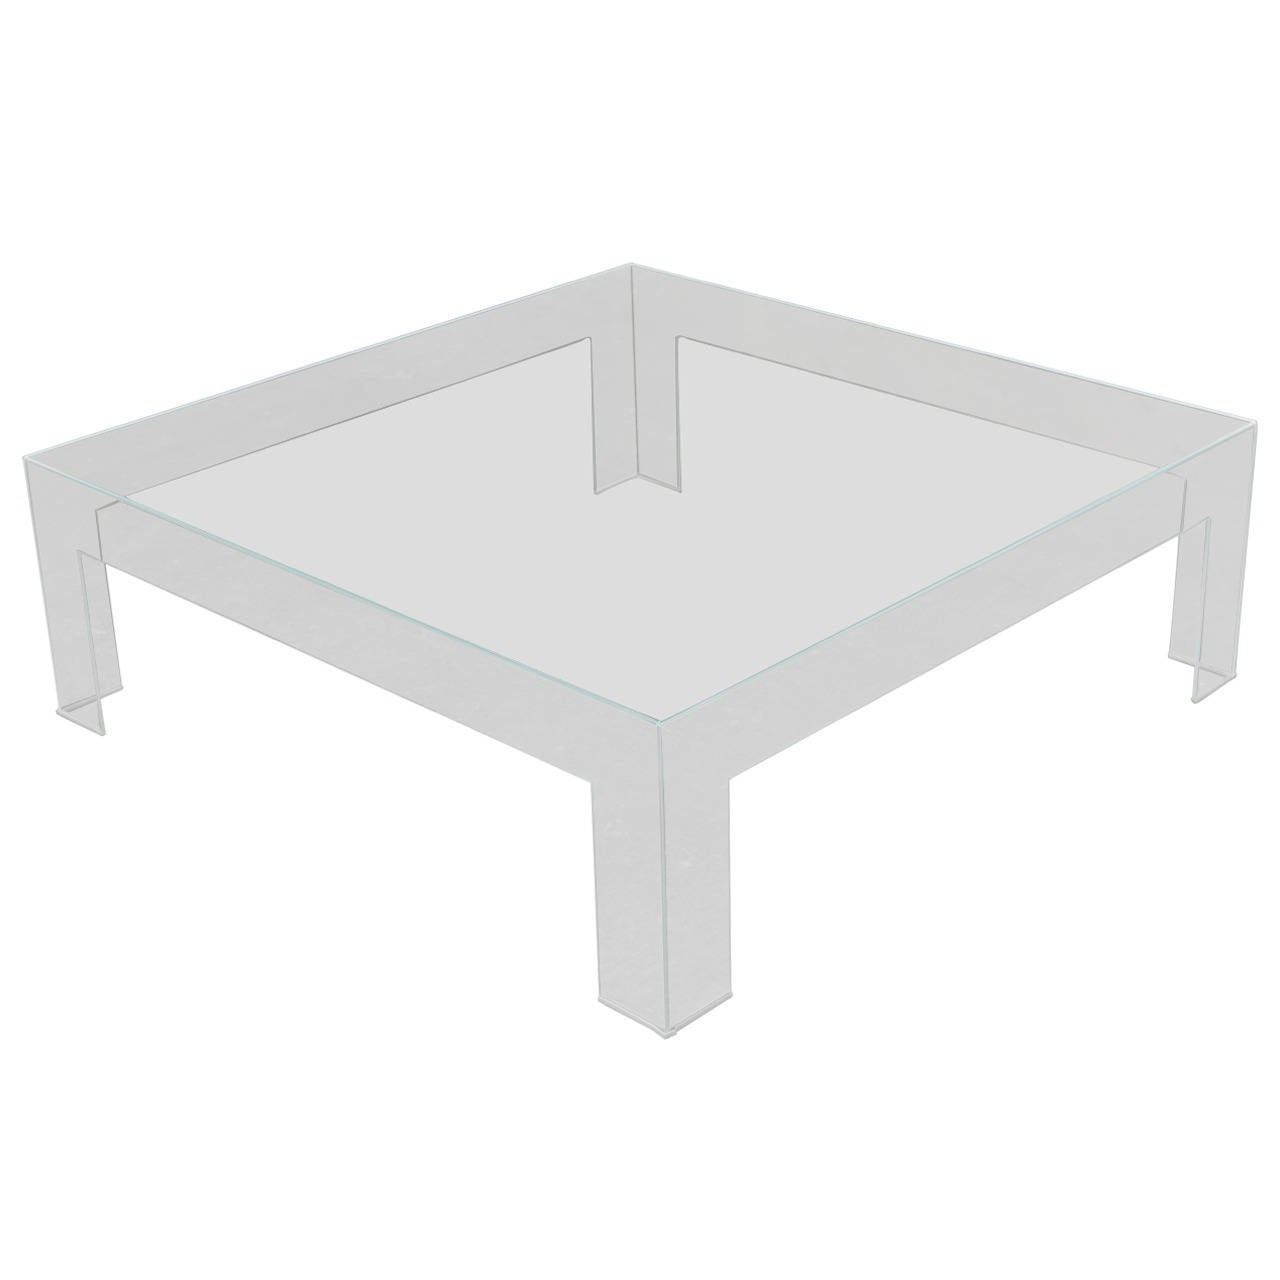 Modern square lucite ghost coffee table at 1stdibs modern square lucite ghost coffee table 1 geotapseo Image collections